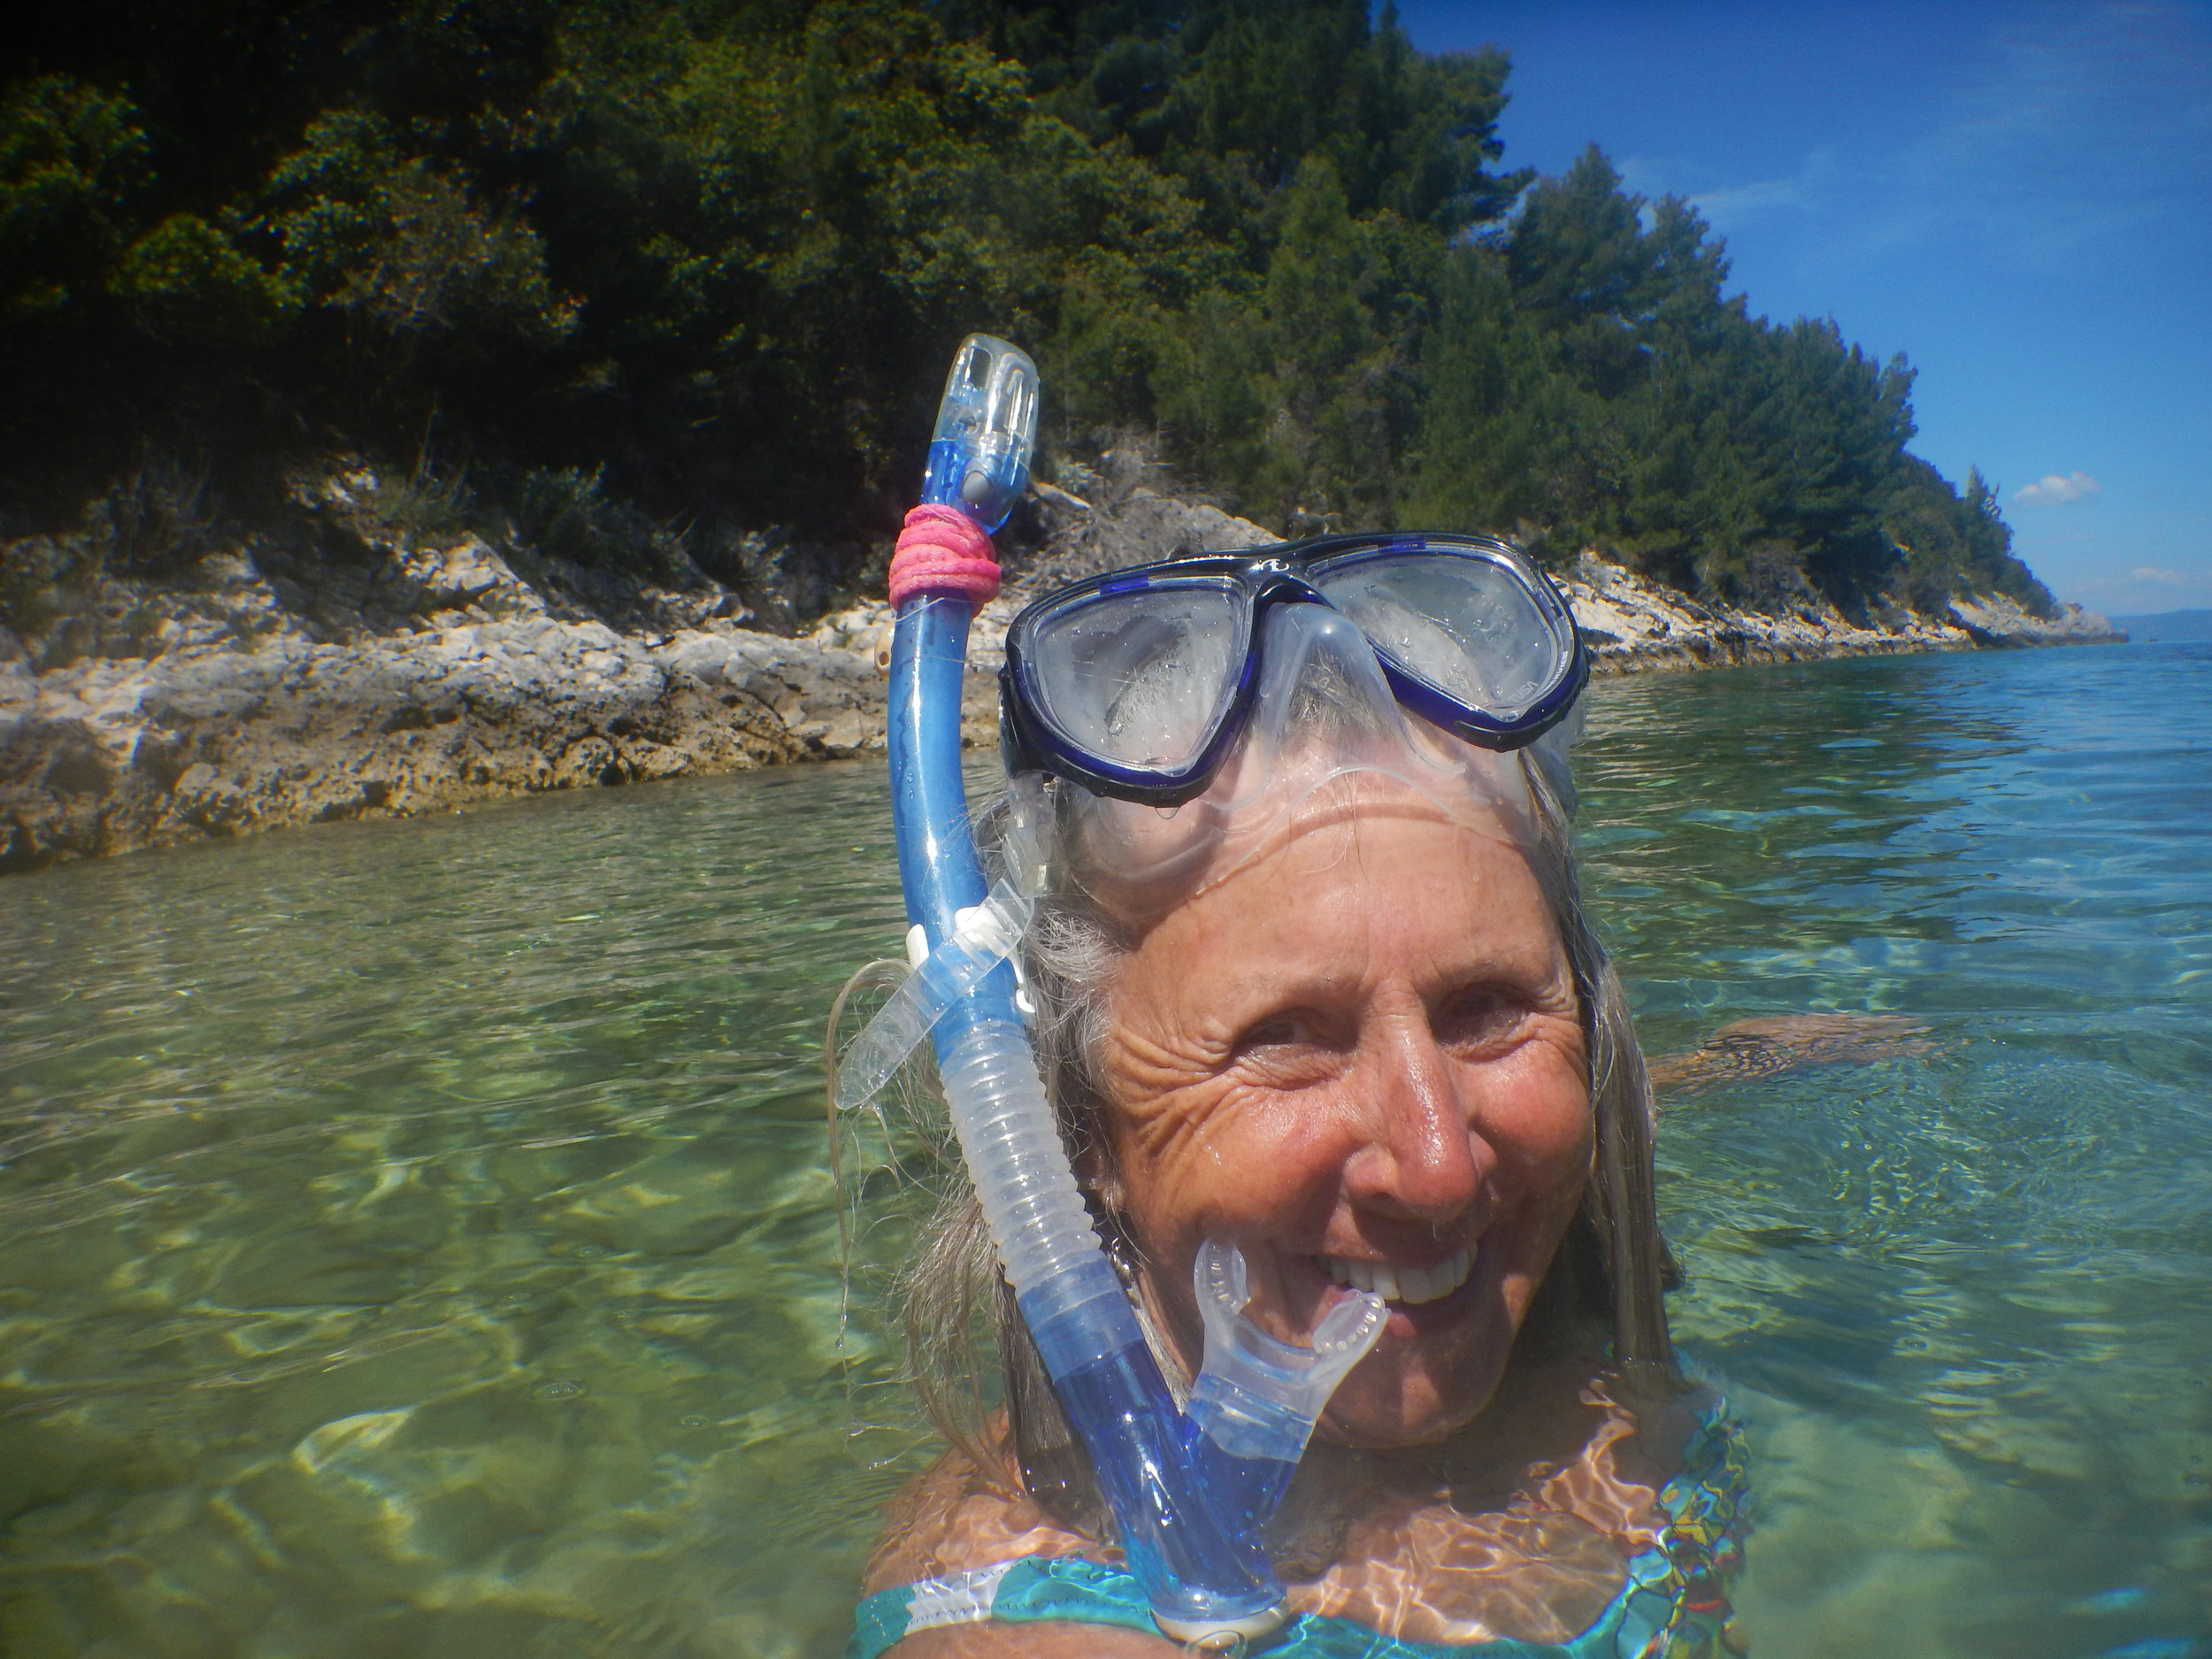 Today for the first time, the water was warm enough to take my Natasha McGhie designer swimwear for a proper snorkel.